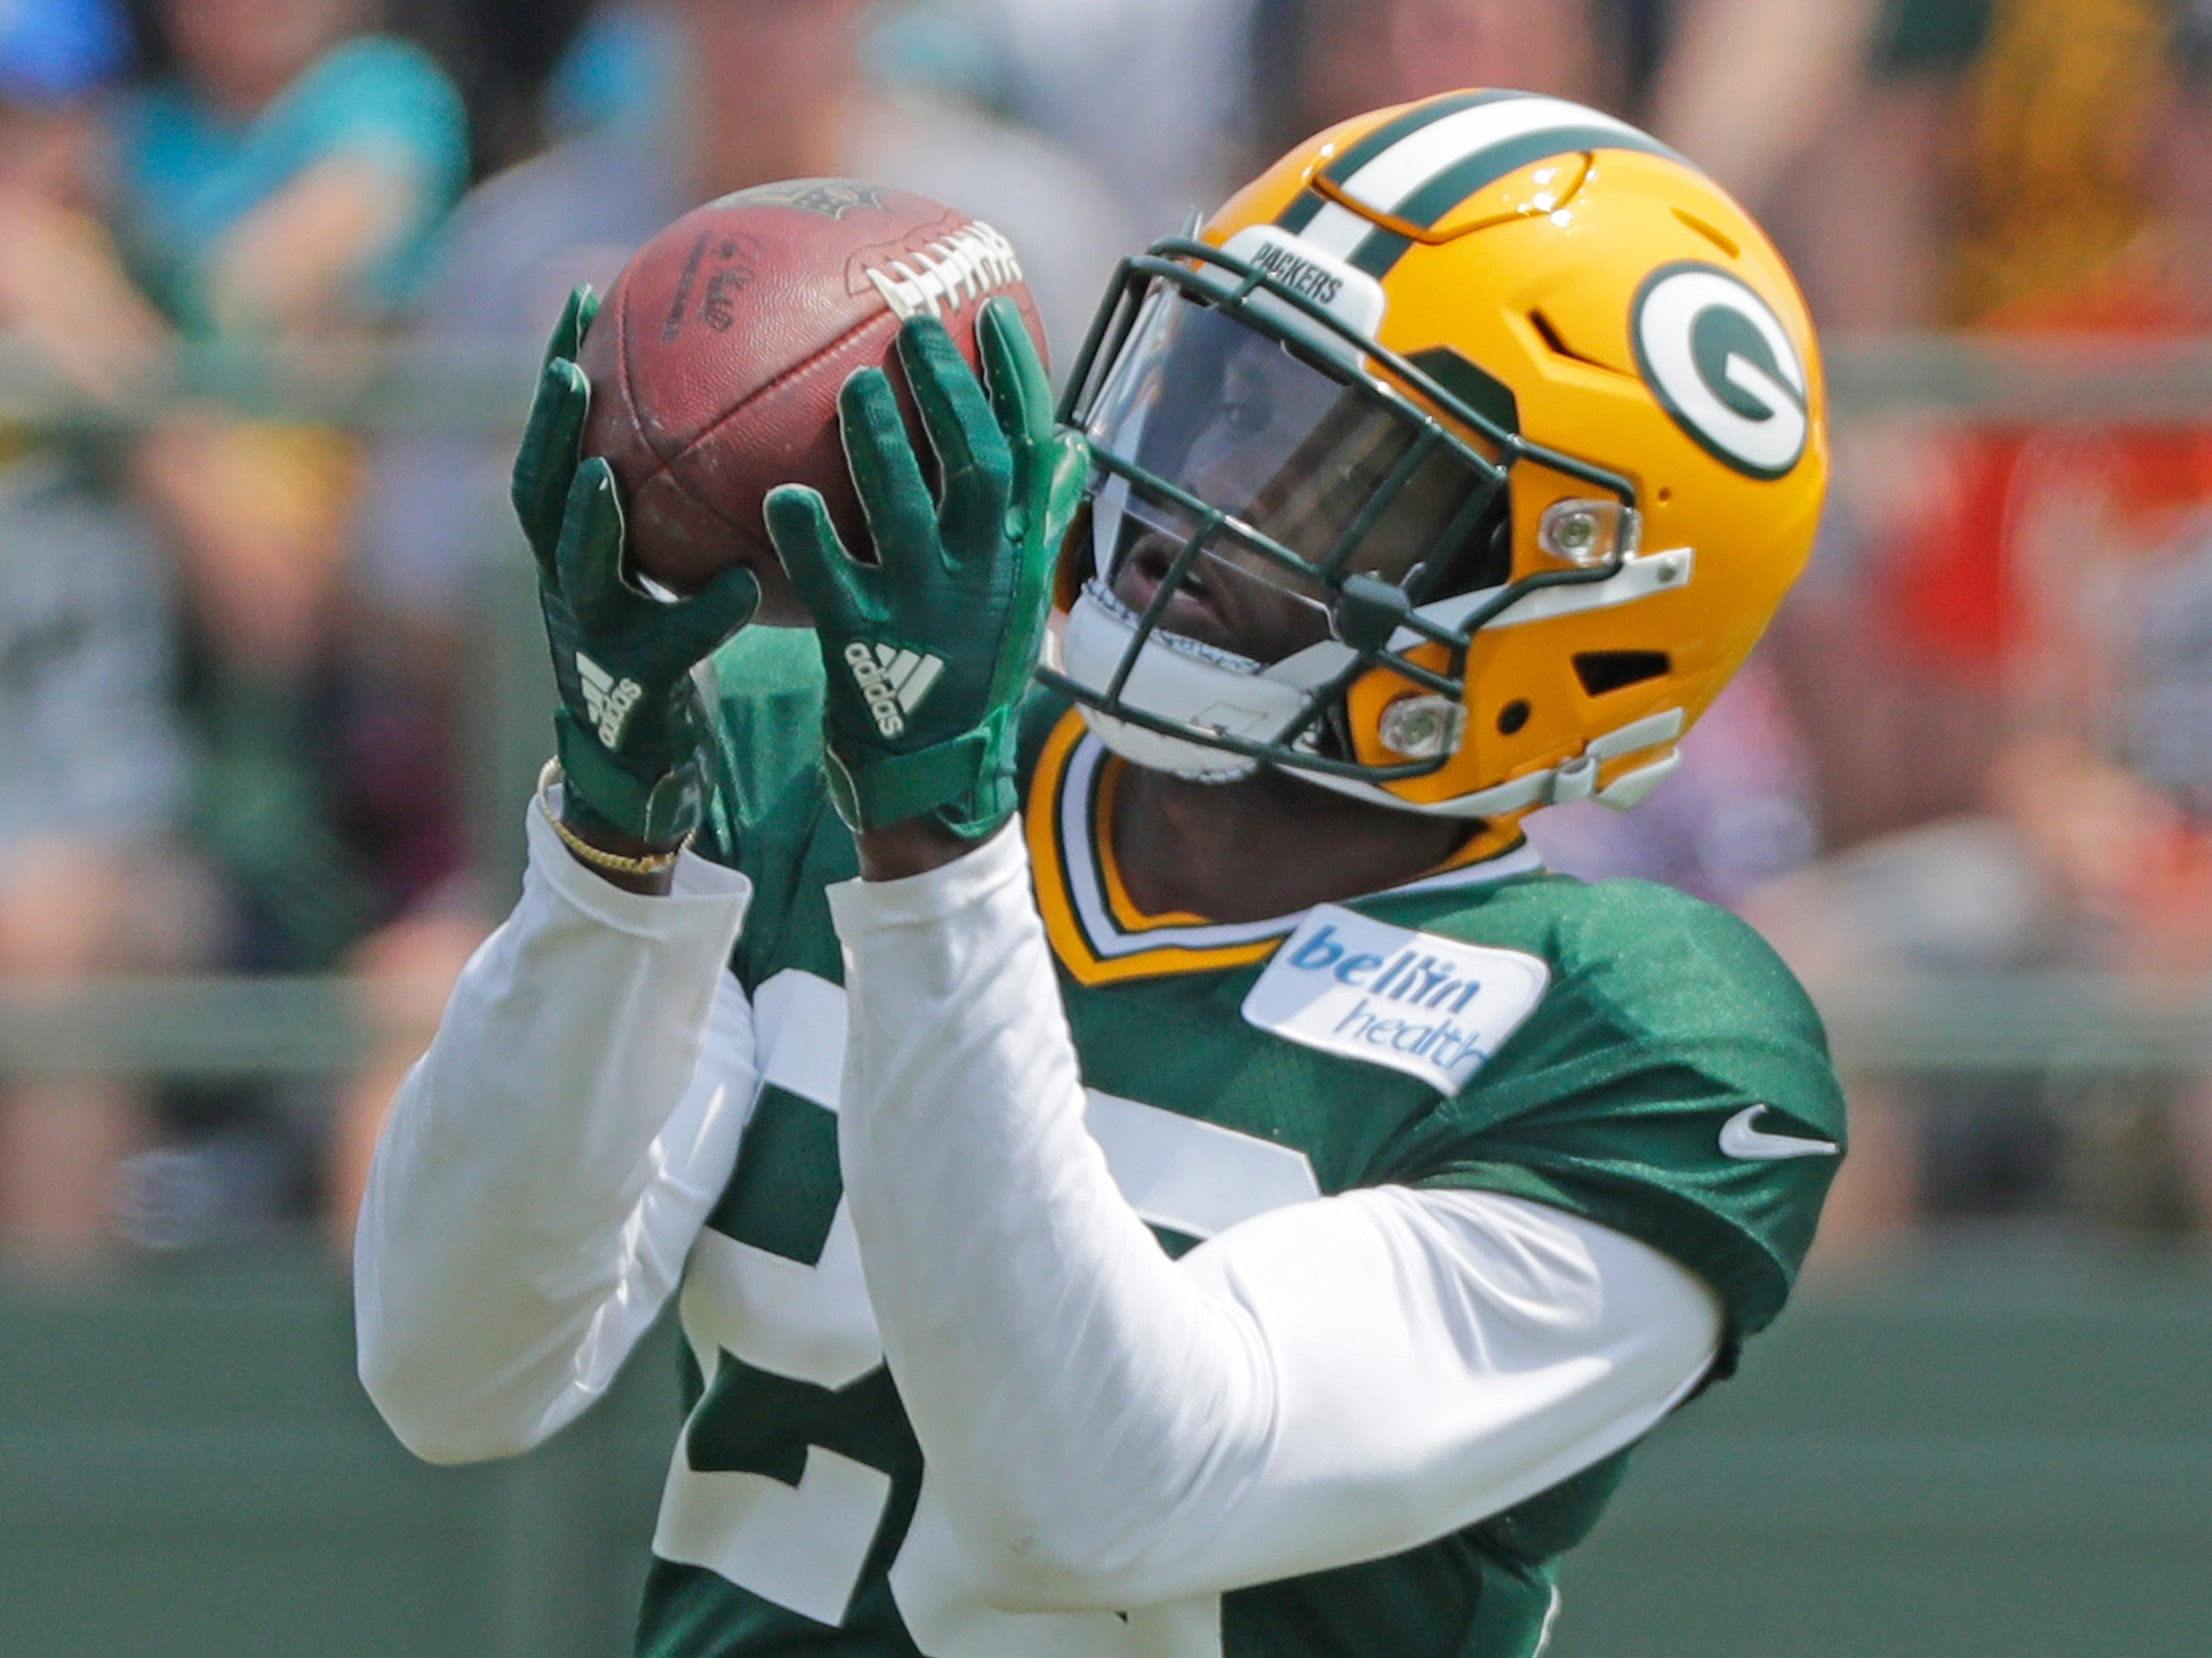 Green Bay Packers cornerback Herb Waters (26) during training camp practice at Ray Nitschke Field on Sunday, August 12, 2018 in Ashwaubenon, Wis. 